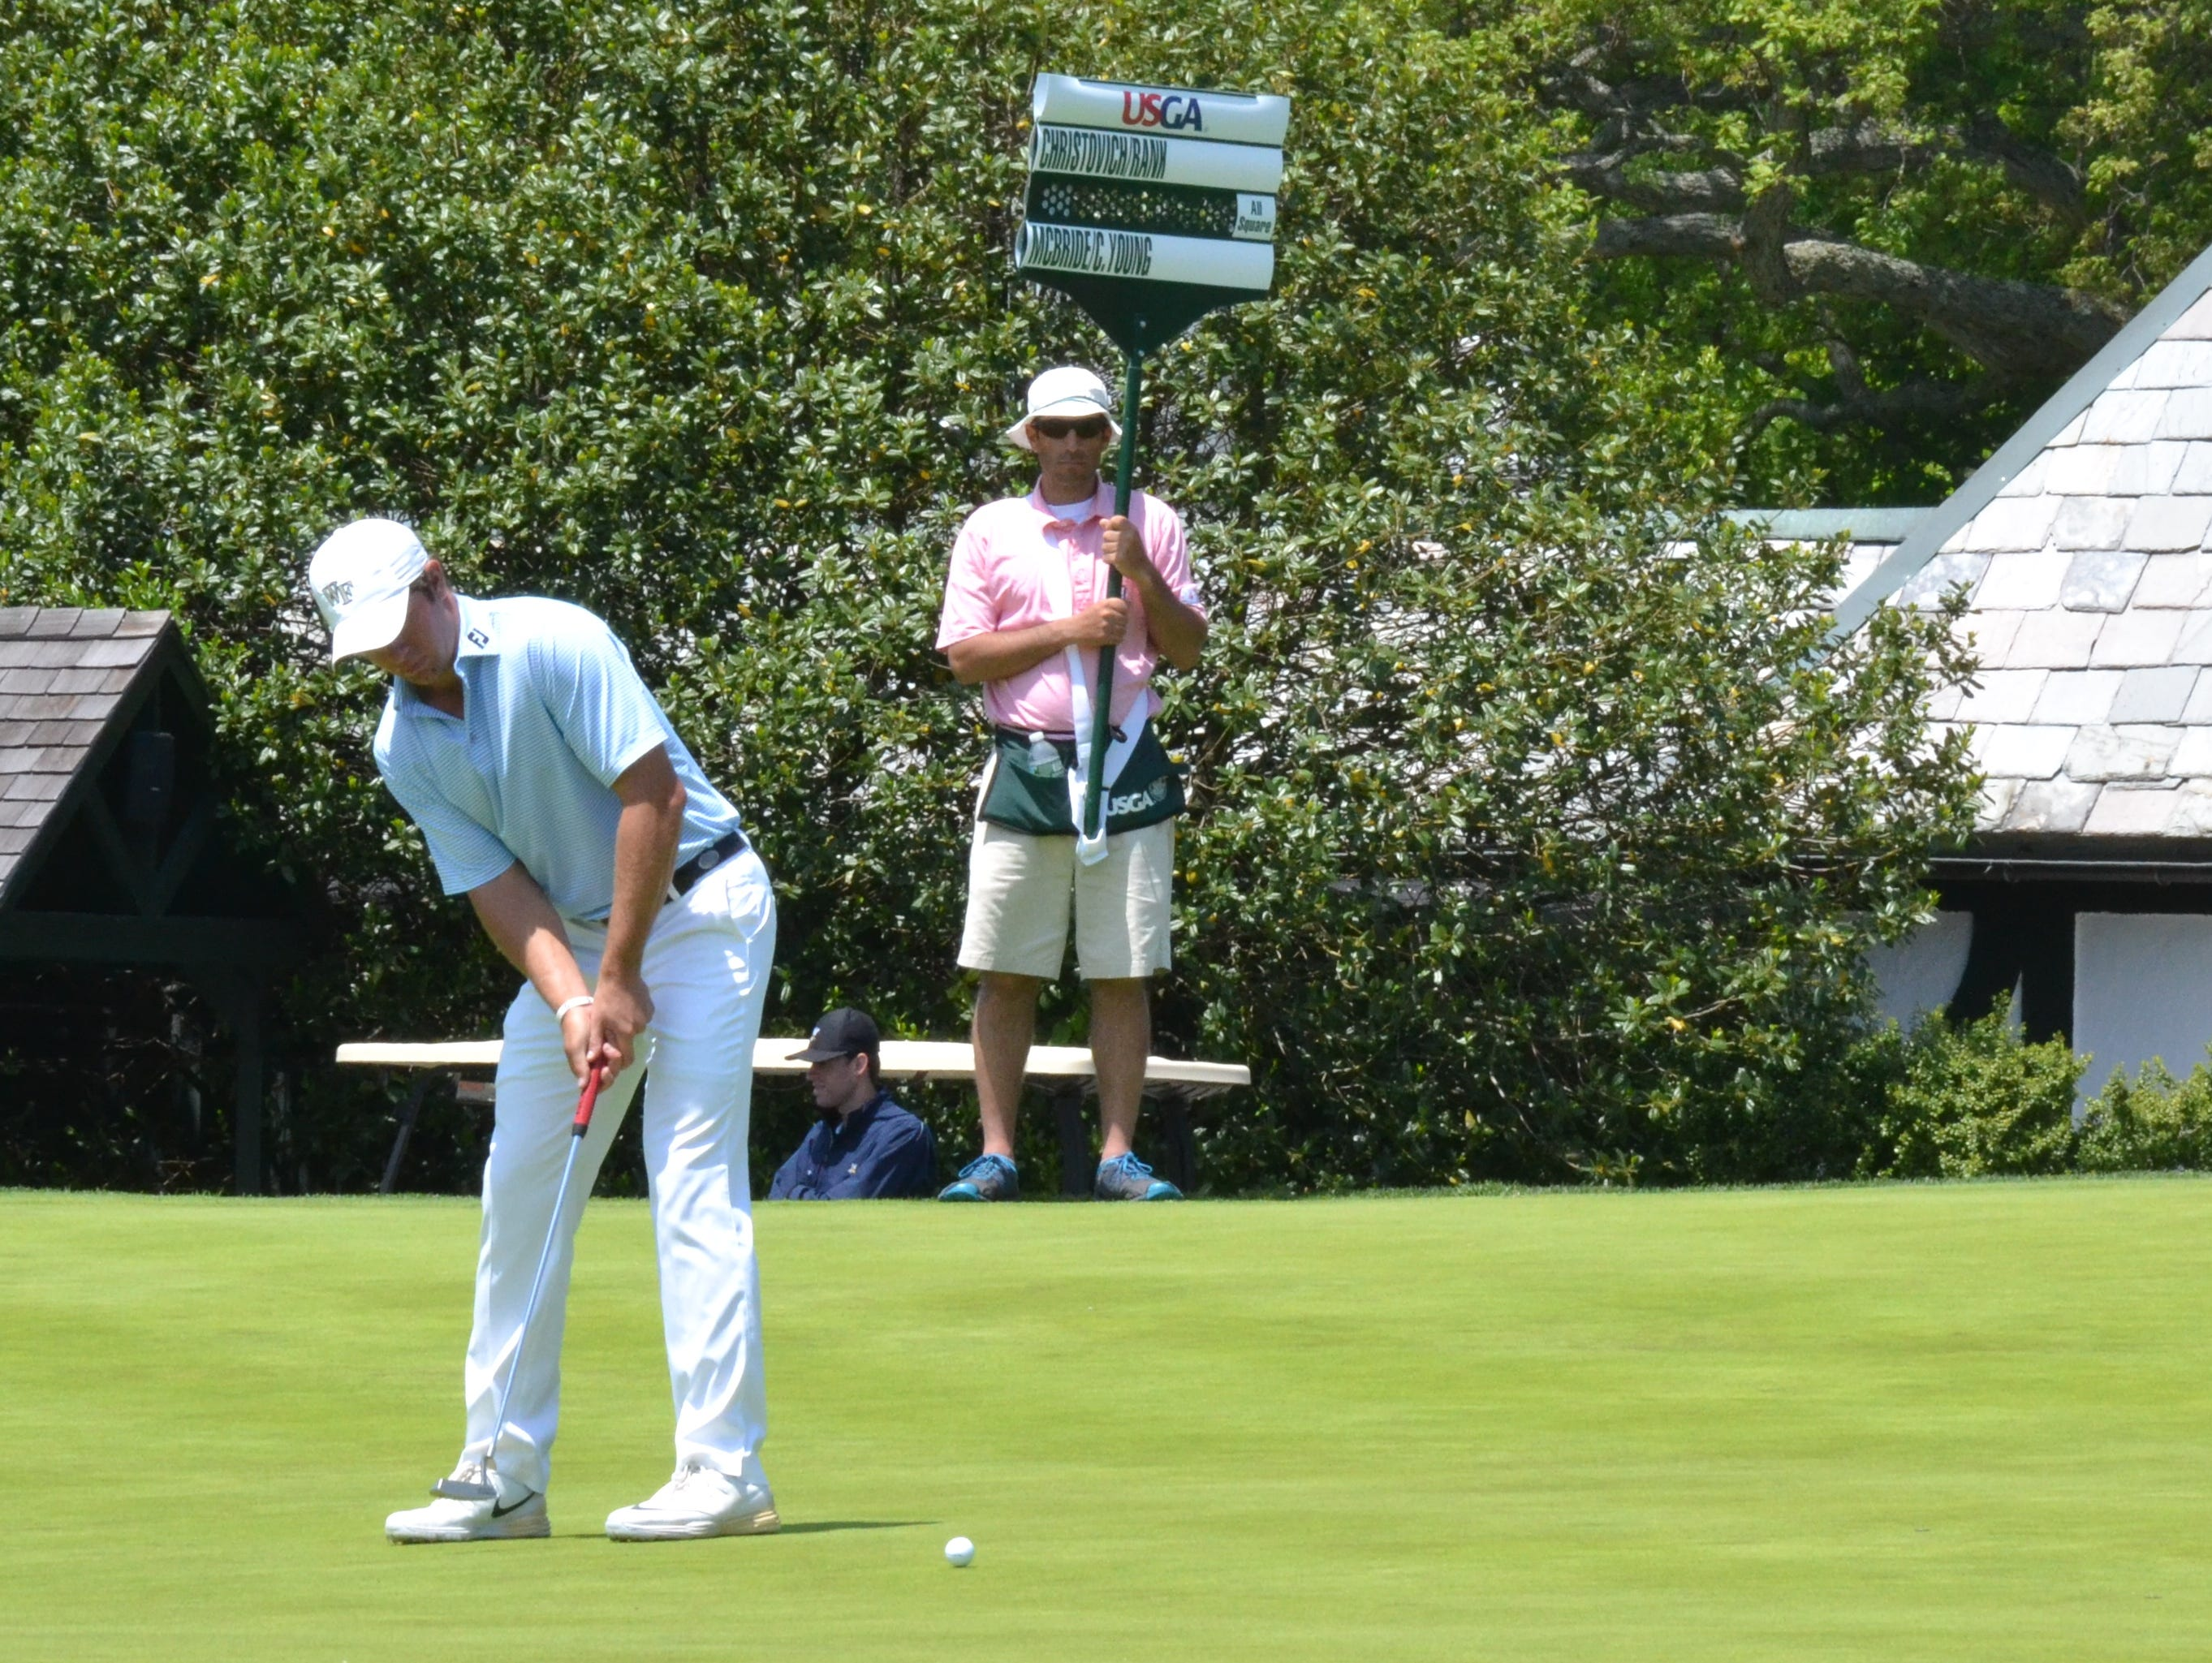 Cameron Young drove the 10th green on Winged Foot East, hitting a 3-wood 299 yards, then rolled in a six-footer for eagle to win the hole.